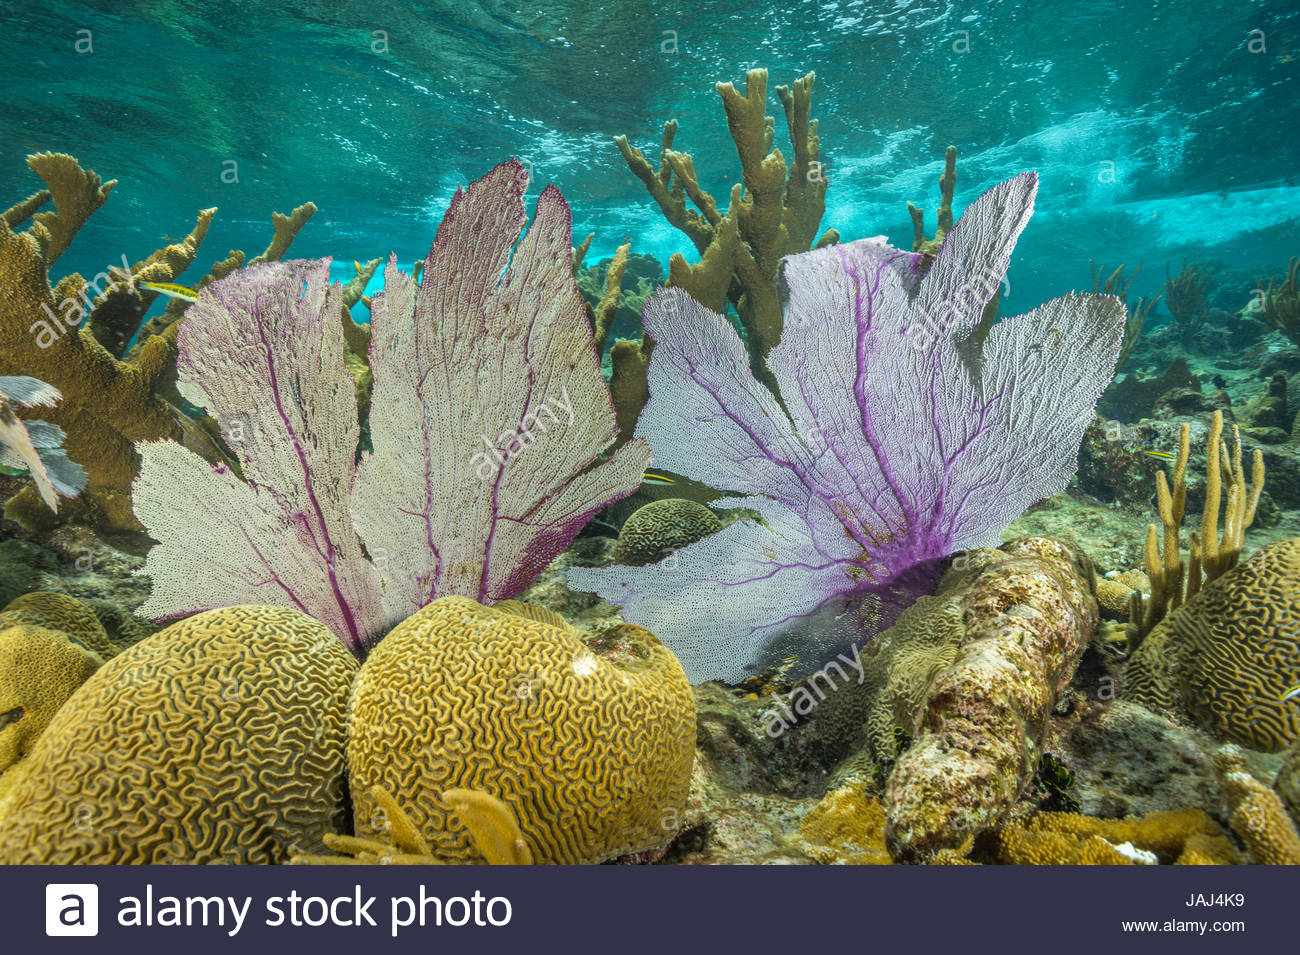 Protected elkhorn corals, brain corals and purple sea fans at Buck Island Reef National Monument. - Stock Image